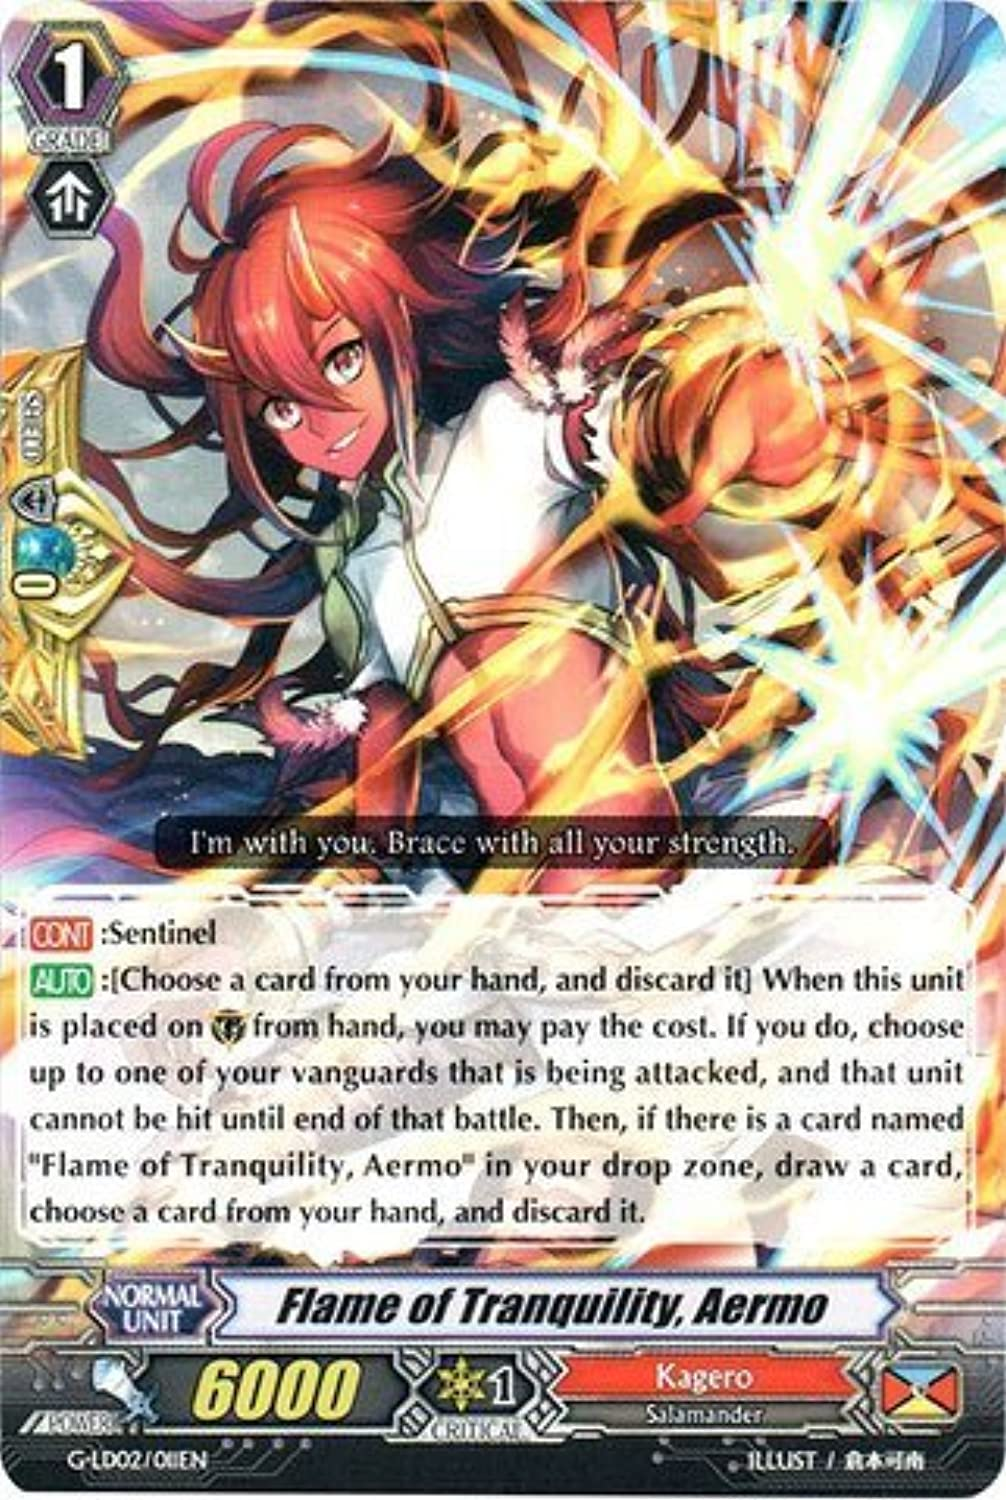 Cardfight   Vanguard TCG - Flame of Tranquility, Aermo (G-LD02 011EN) - G Legend Deck 2  The Overlord blaze Toshiki Kai by Cardfight   Vanguard TCG